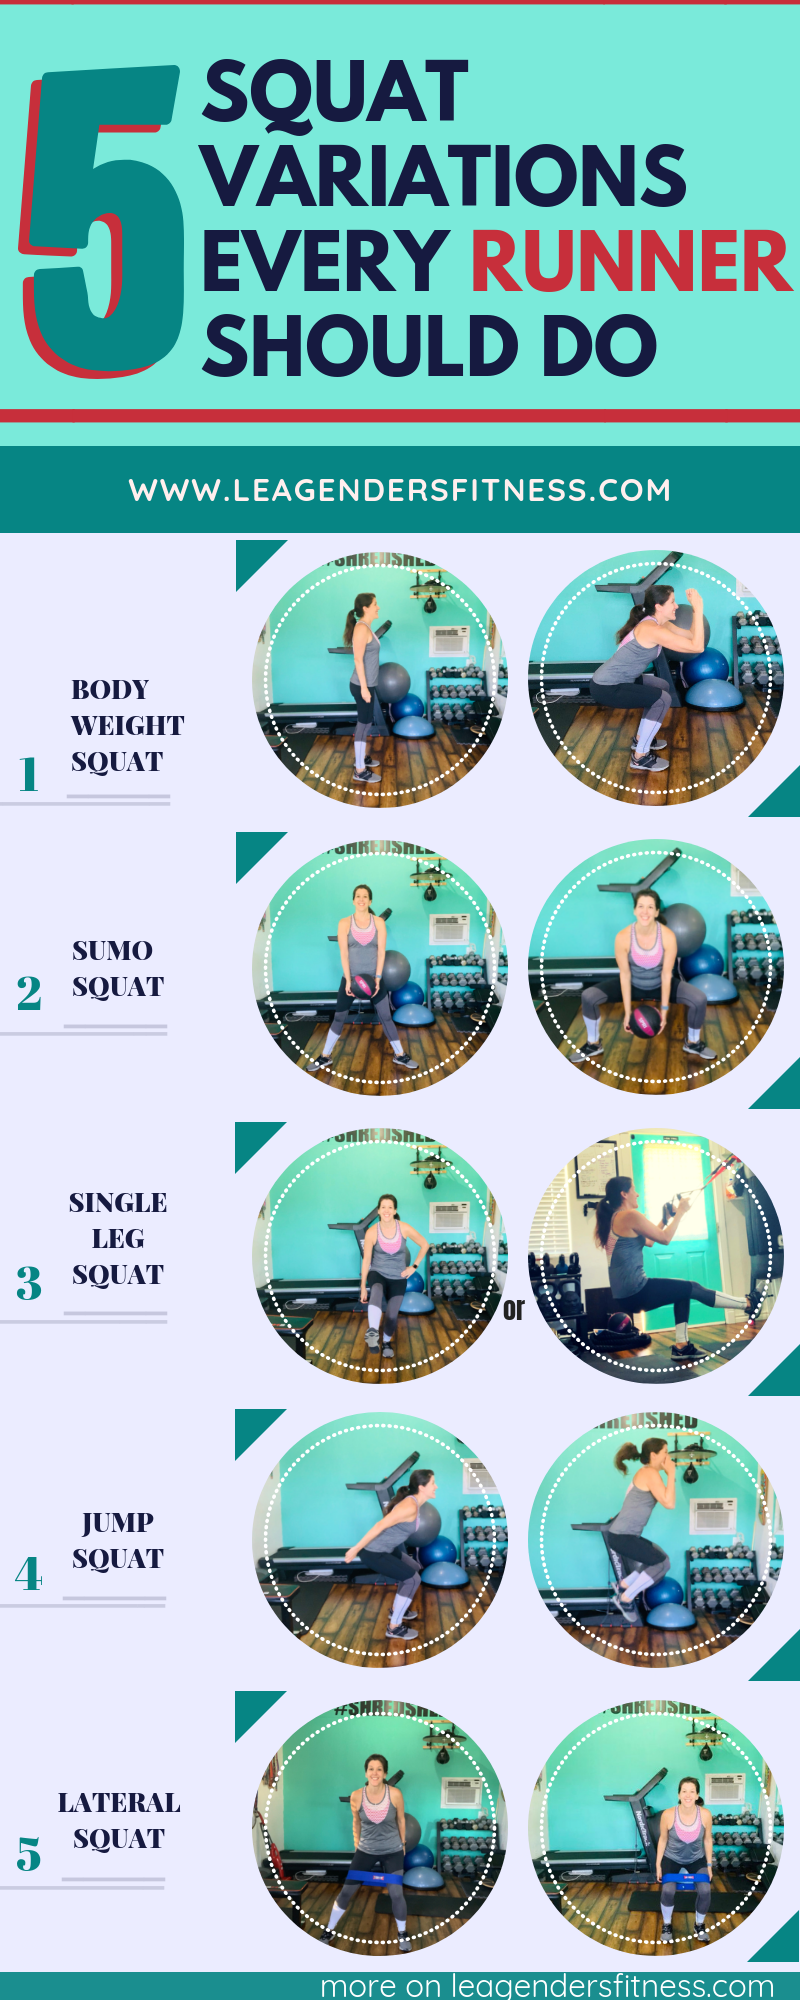 squat variations to run stronger v2.png